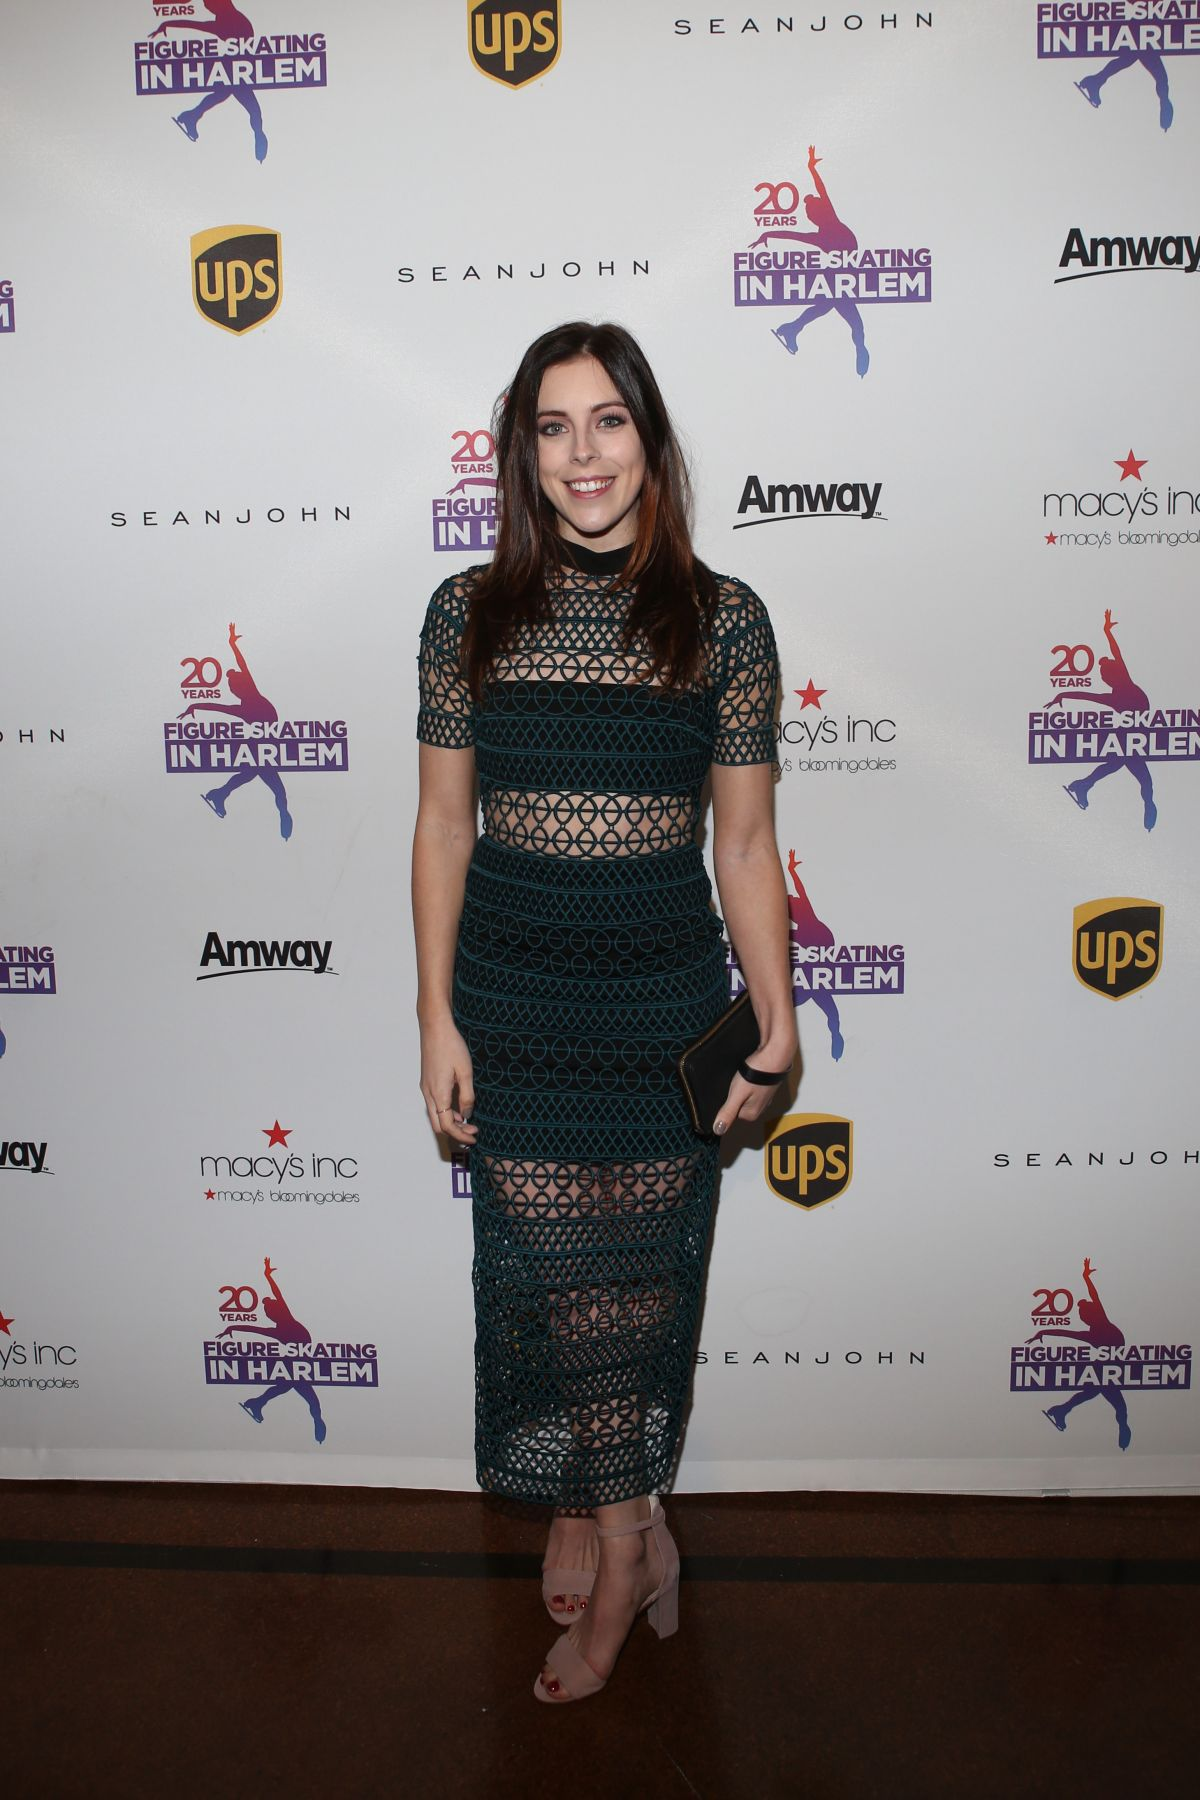 ASHLEY WAGNER at Figure Skating in Harlem Gala in New York ...